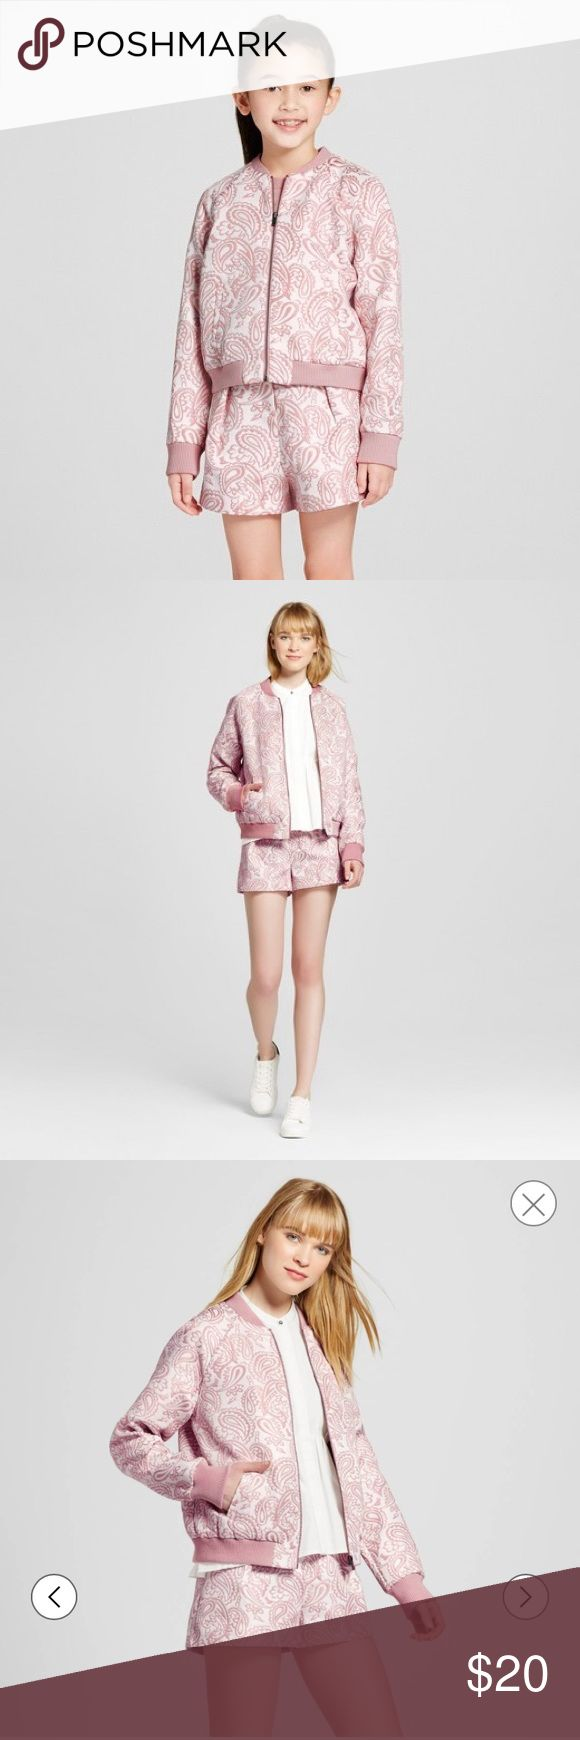 Girls' Jacquard Bomber Jacket Victoria Beckham A sweet spin on a hot new trend, this Girls' Blush Floral Jacquard Bomber Jacket by Victoria Beckham for Target is an essential lightweight jacket that she'll want to wear every day. The Victoria Beckham collection for Target celebrates the shared experiences between Victoria and her daughter. The result is a look that's fashionable, yet free-spirited and timeless. Sizing: Kids XL Pattern: woven pattern Material: 52% Polyester, 48% Cotton…